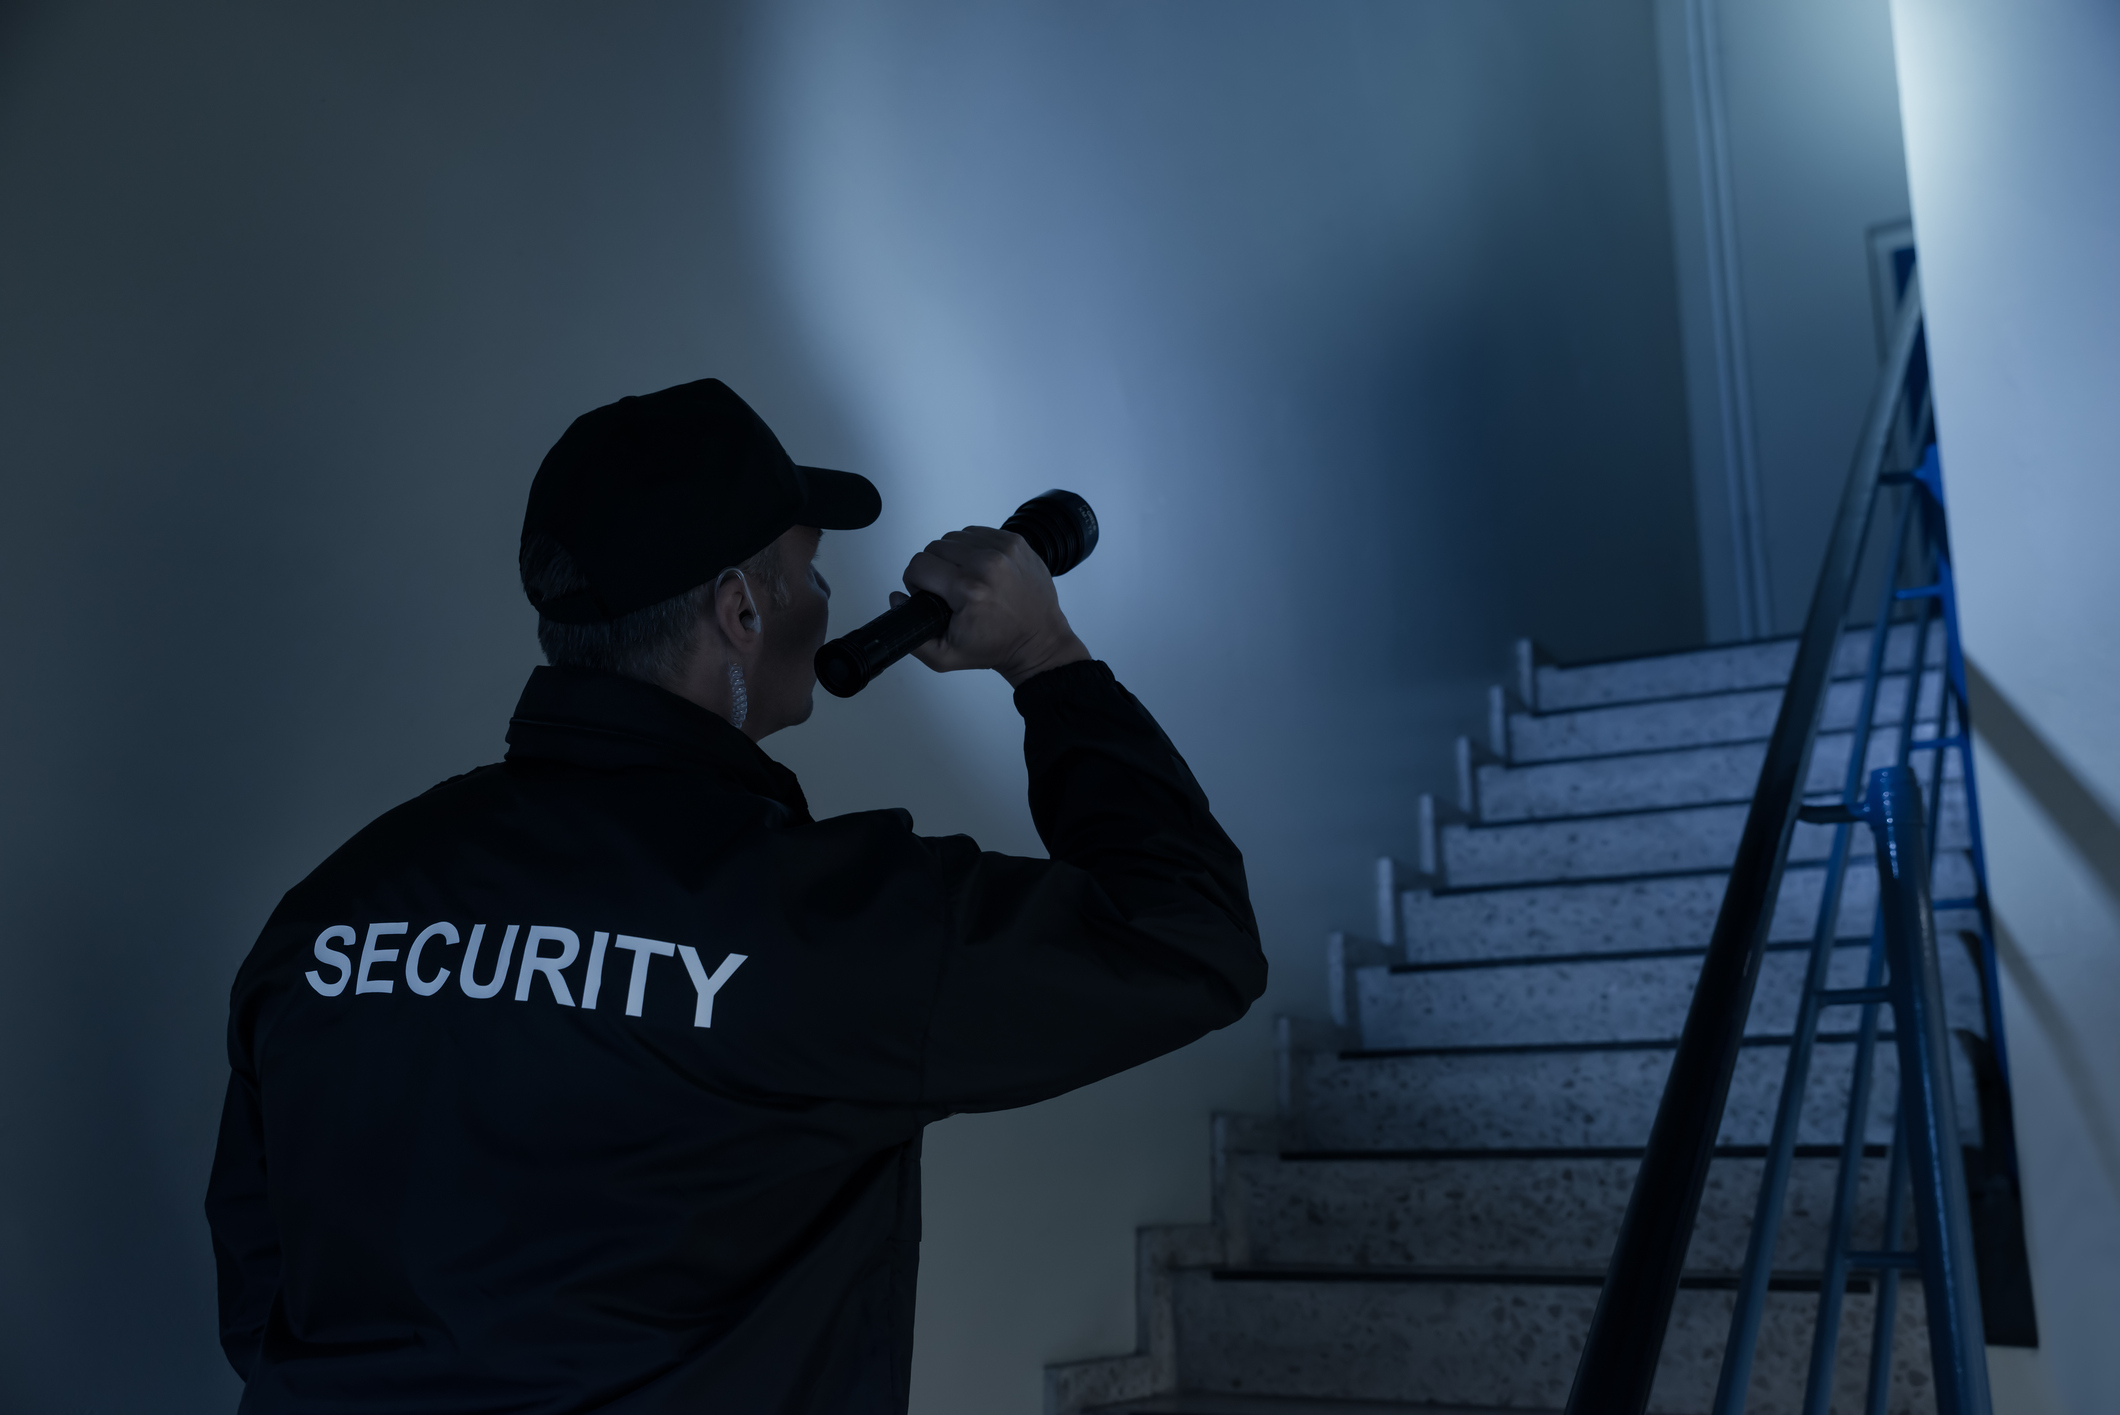 Unarmed - Armed - Executive Protection - Private Investigation - Gate Access Control - HOA Patrol